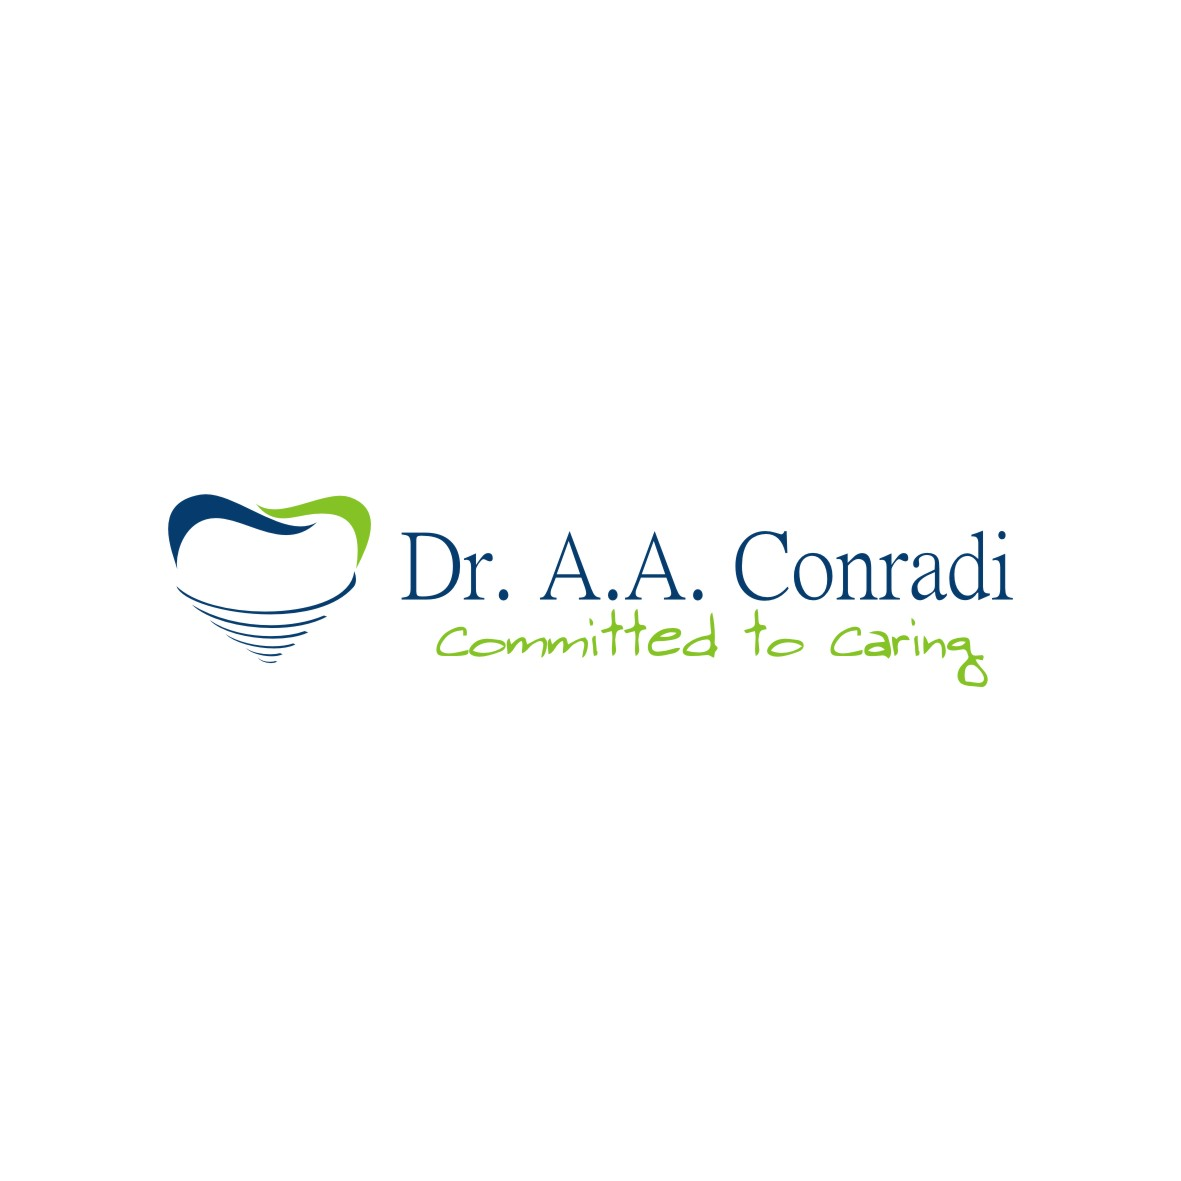 Logo Design by arteo_design - Entry No. 138 in the Logo Design Contest Unique Logo Design Wanted for Dr. A.A. Conradi.